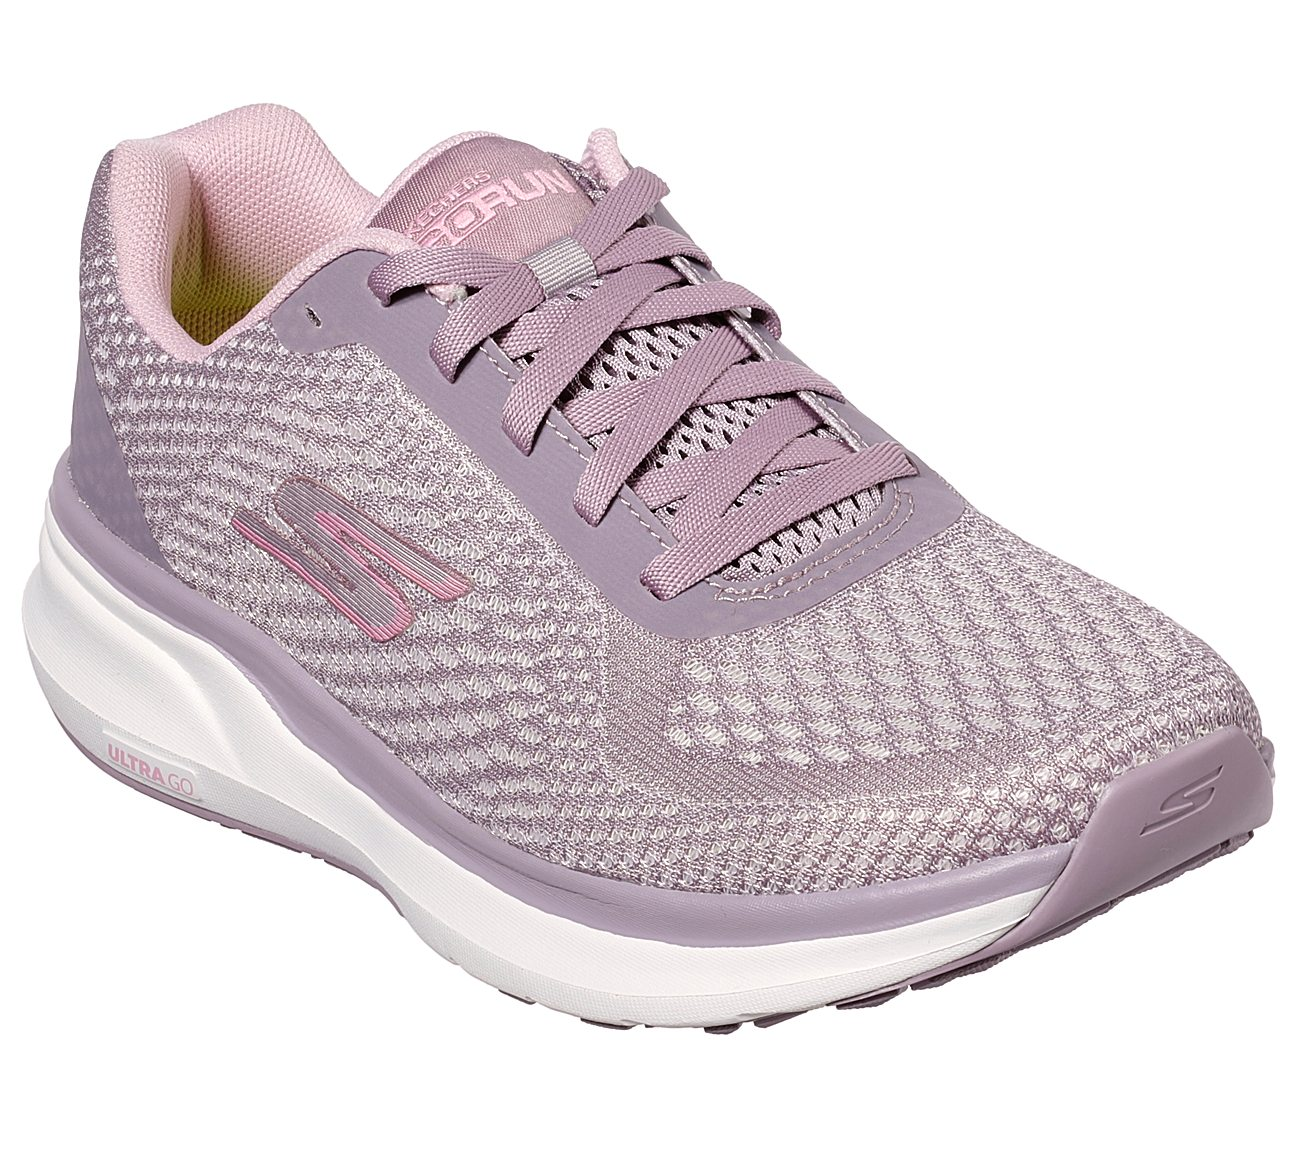 46a01cd0 Buy SKECHERS GOrun Pure™ Skechers Performance Shoes only 90,00 €